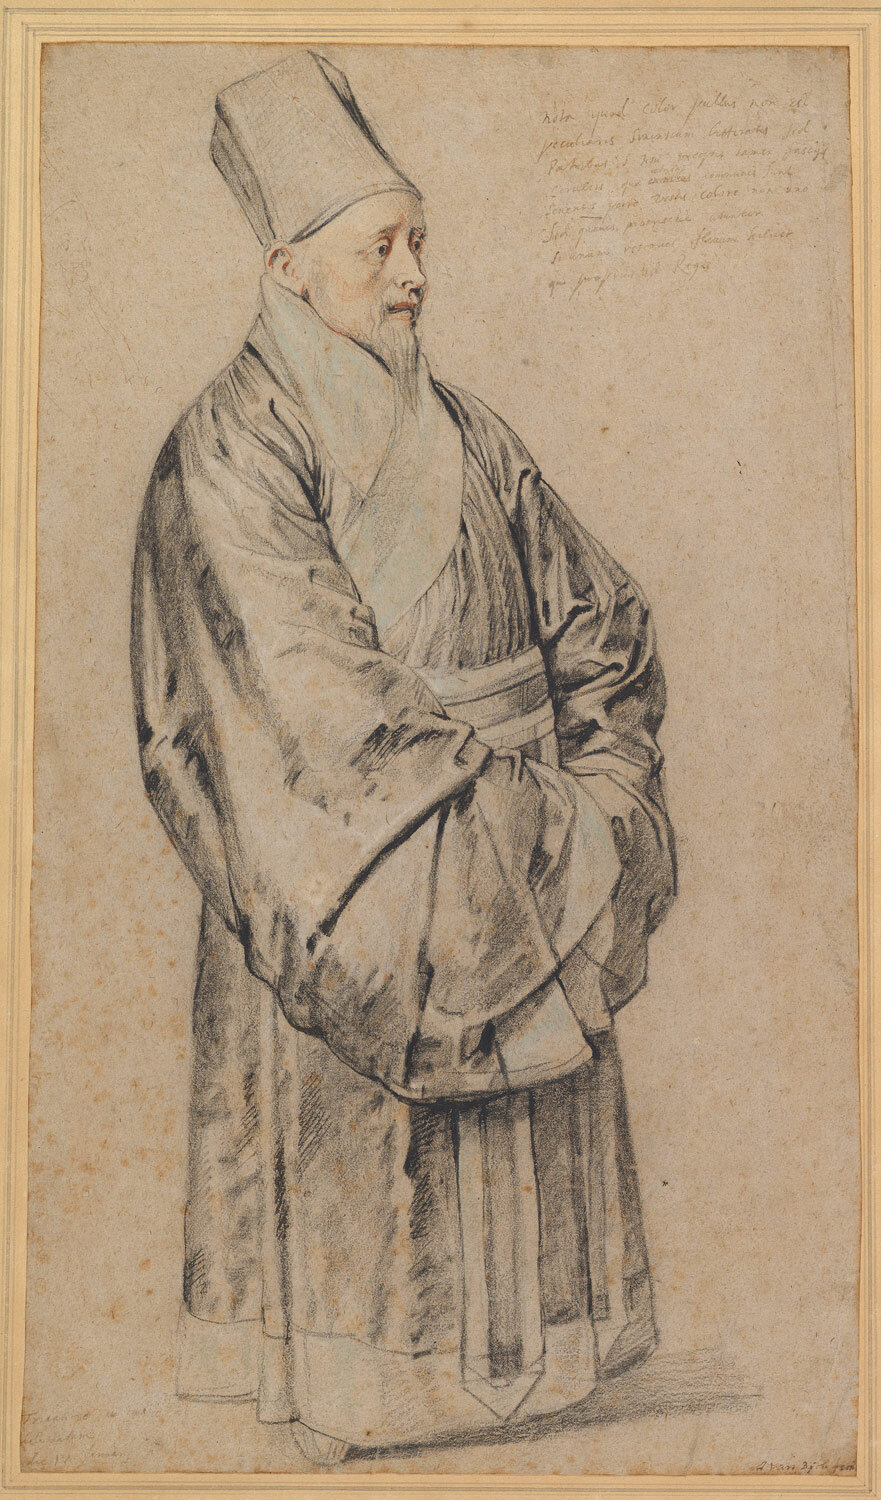 Portrait of Nicolas Trigault in Chinese Costume, 1617, black, red, and white chalk, blue pastel, and pen and brown and black ink on light brown laid paper, Peter Paul Rubens (1577-1640), (Image courtesy of the Metropolitan Museum of Art, New York)